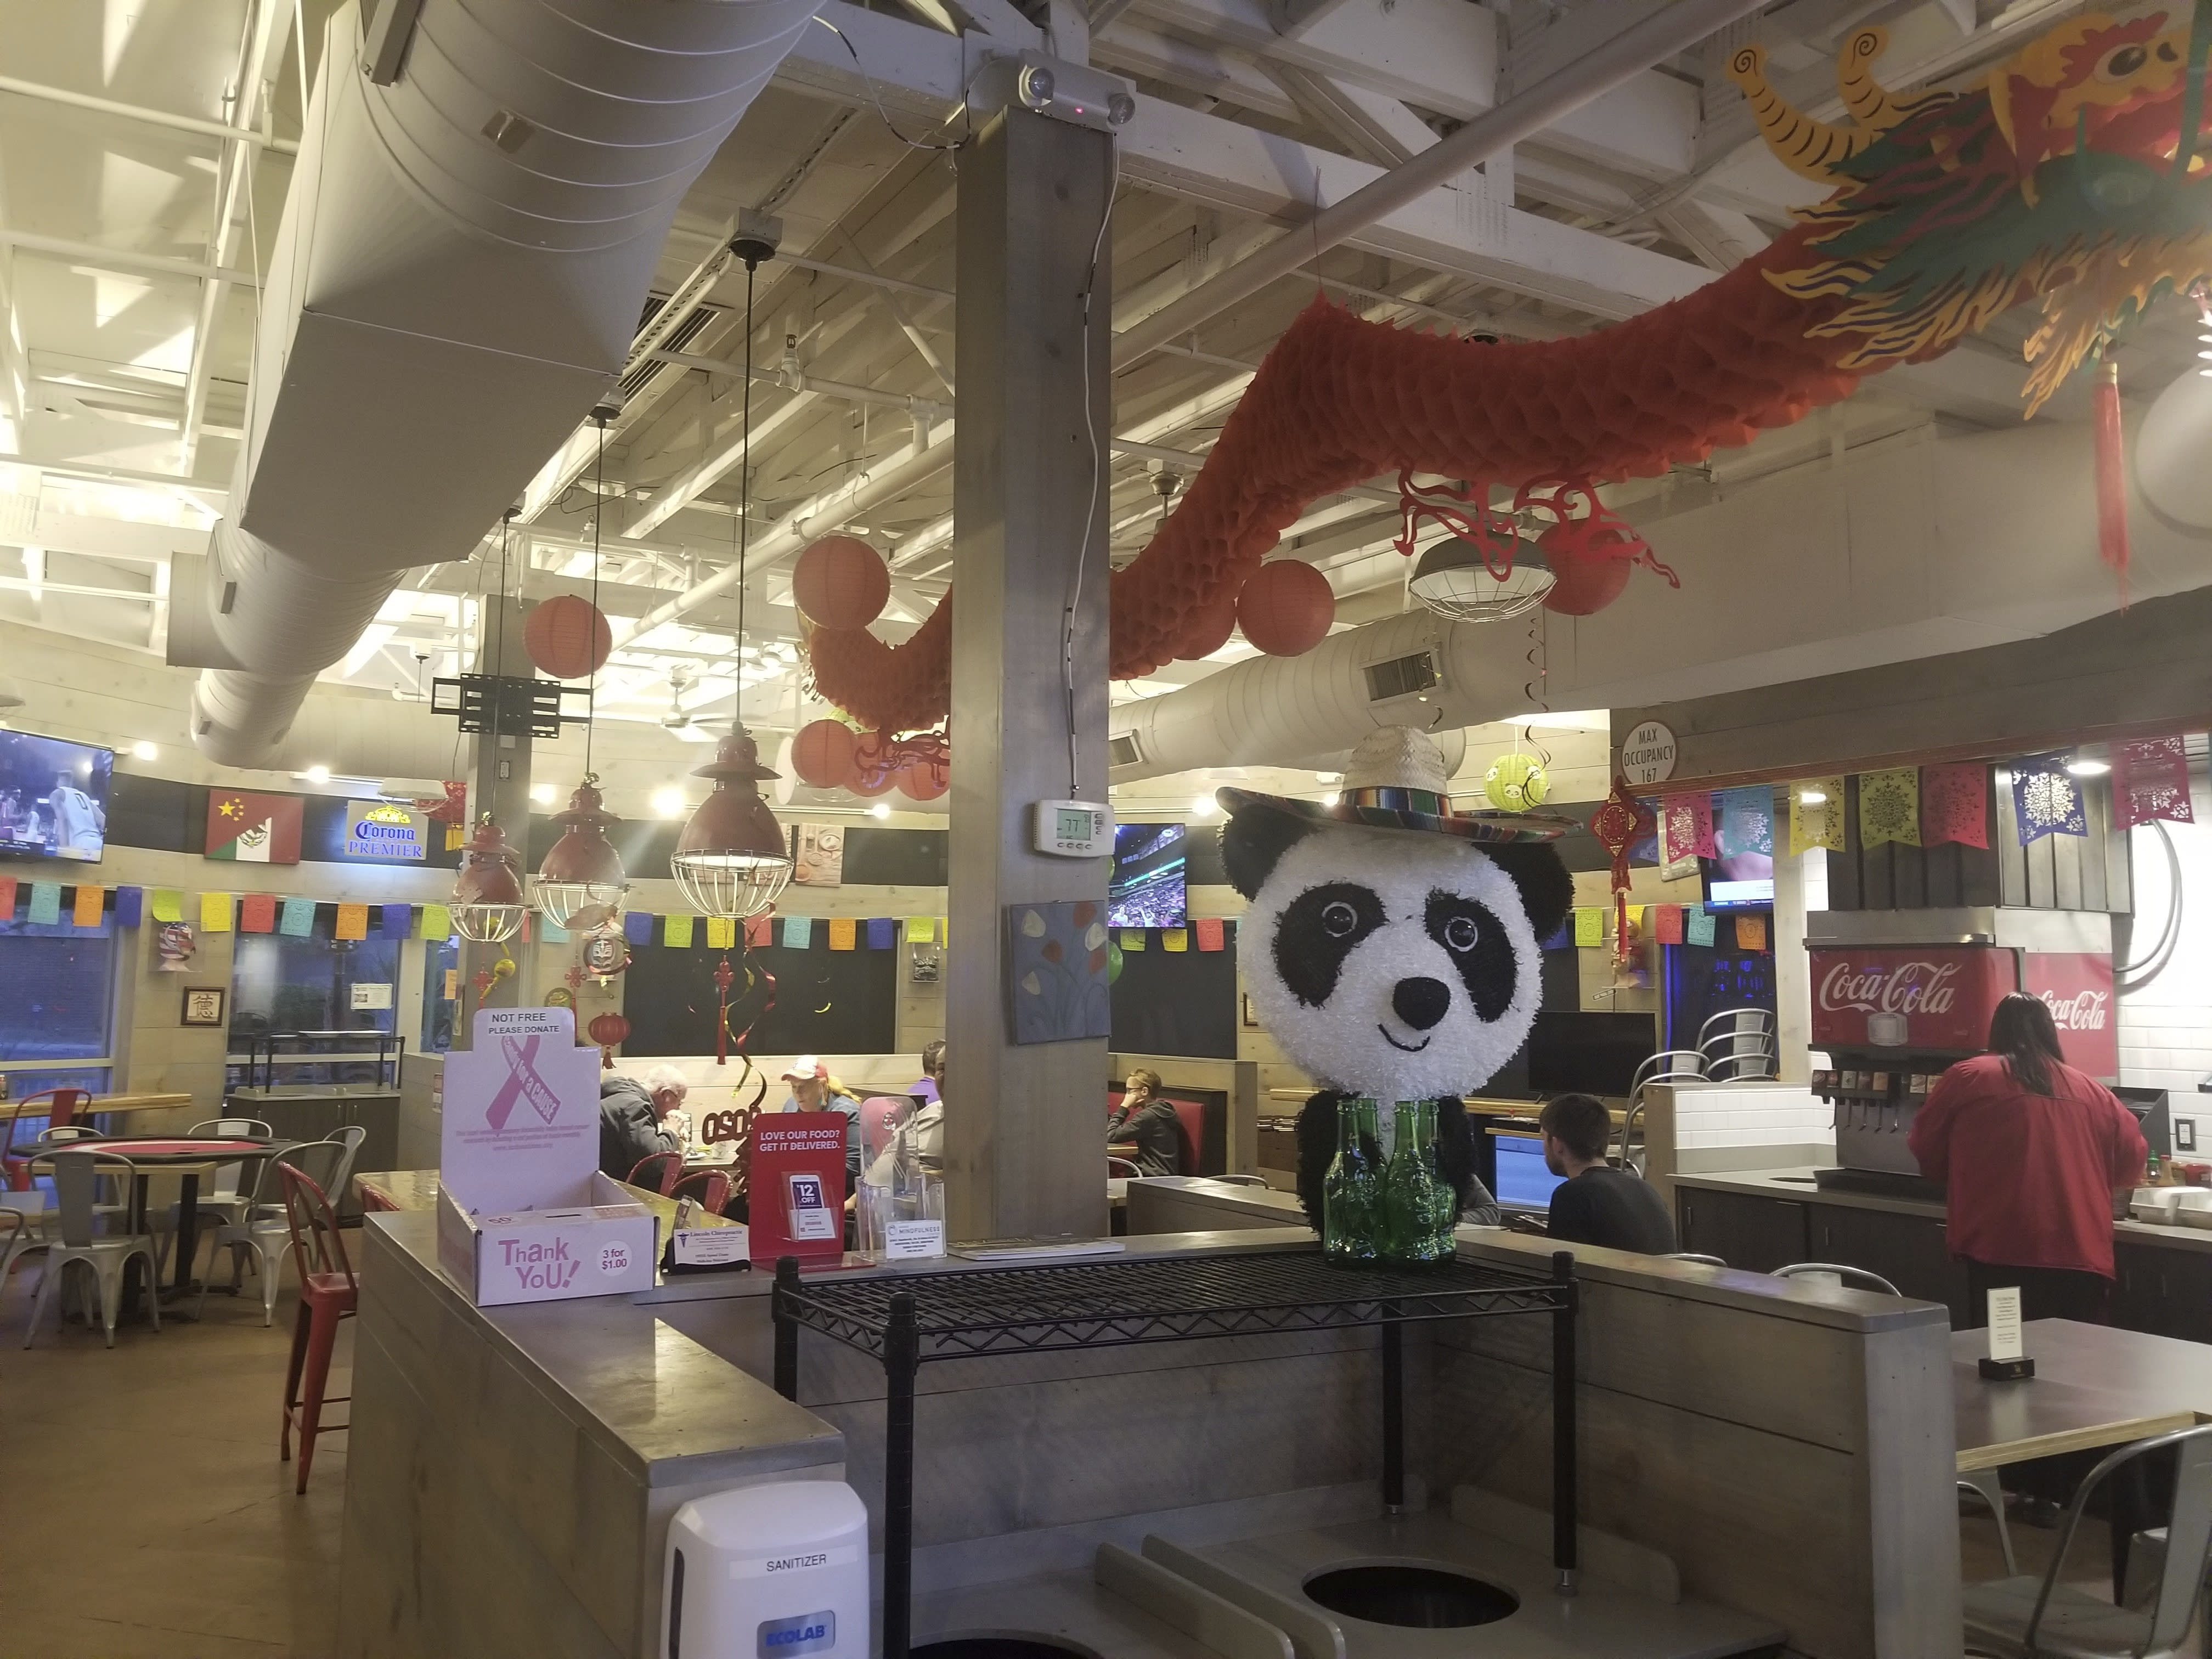 """This Feb. 27, 2020 photo shows the inside of Panda Libre, an Asian-Mexican fusion restaurant, in Gilbert, Ariz. Getting a trademark for the new name can lead to ugly and sometimes public clashes over ownership and cultural appropriation. In recent years, businesses have butted heads over whether a restaurant or food truck can legally own the right to use words rooted in Asian American Pacific Islander cultures like """"aloha"""" and """"poke."""" (AP Photo/Terry Tang)"""